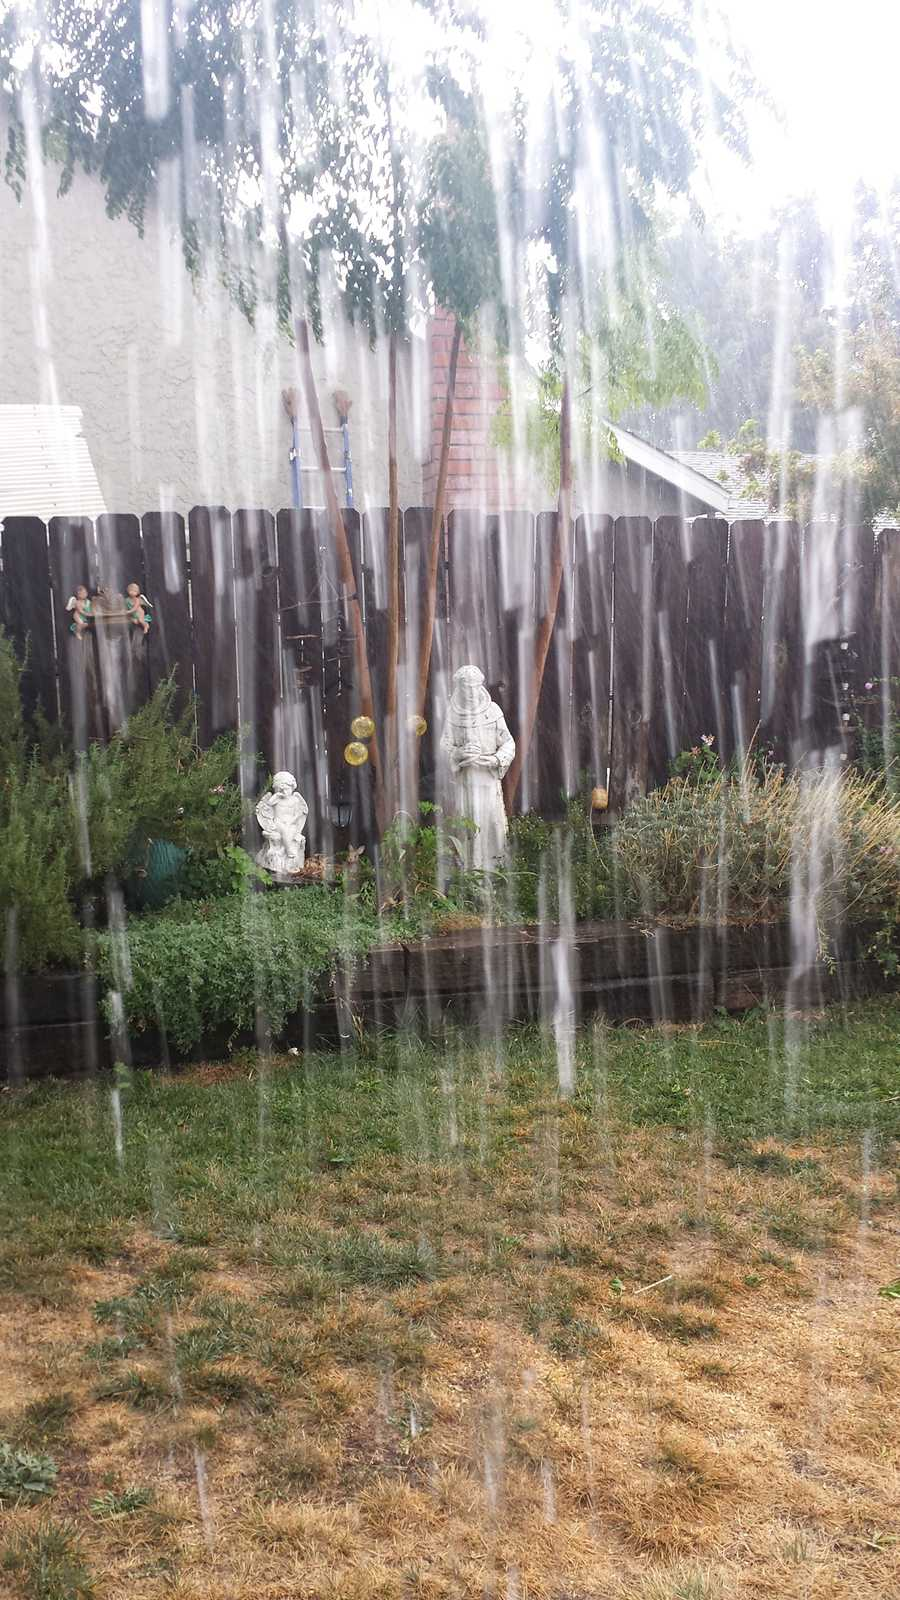 Rain in Vacaville. Photo was shared by a KCRA viewer on Sunday, Oct. 18, 2015.